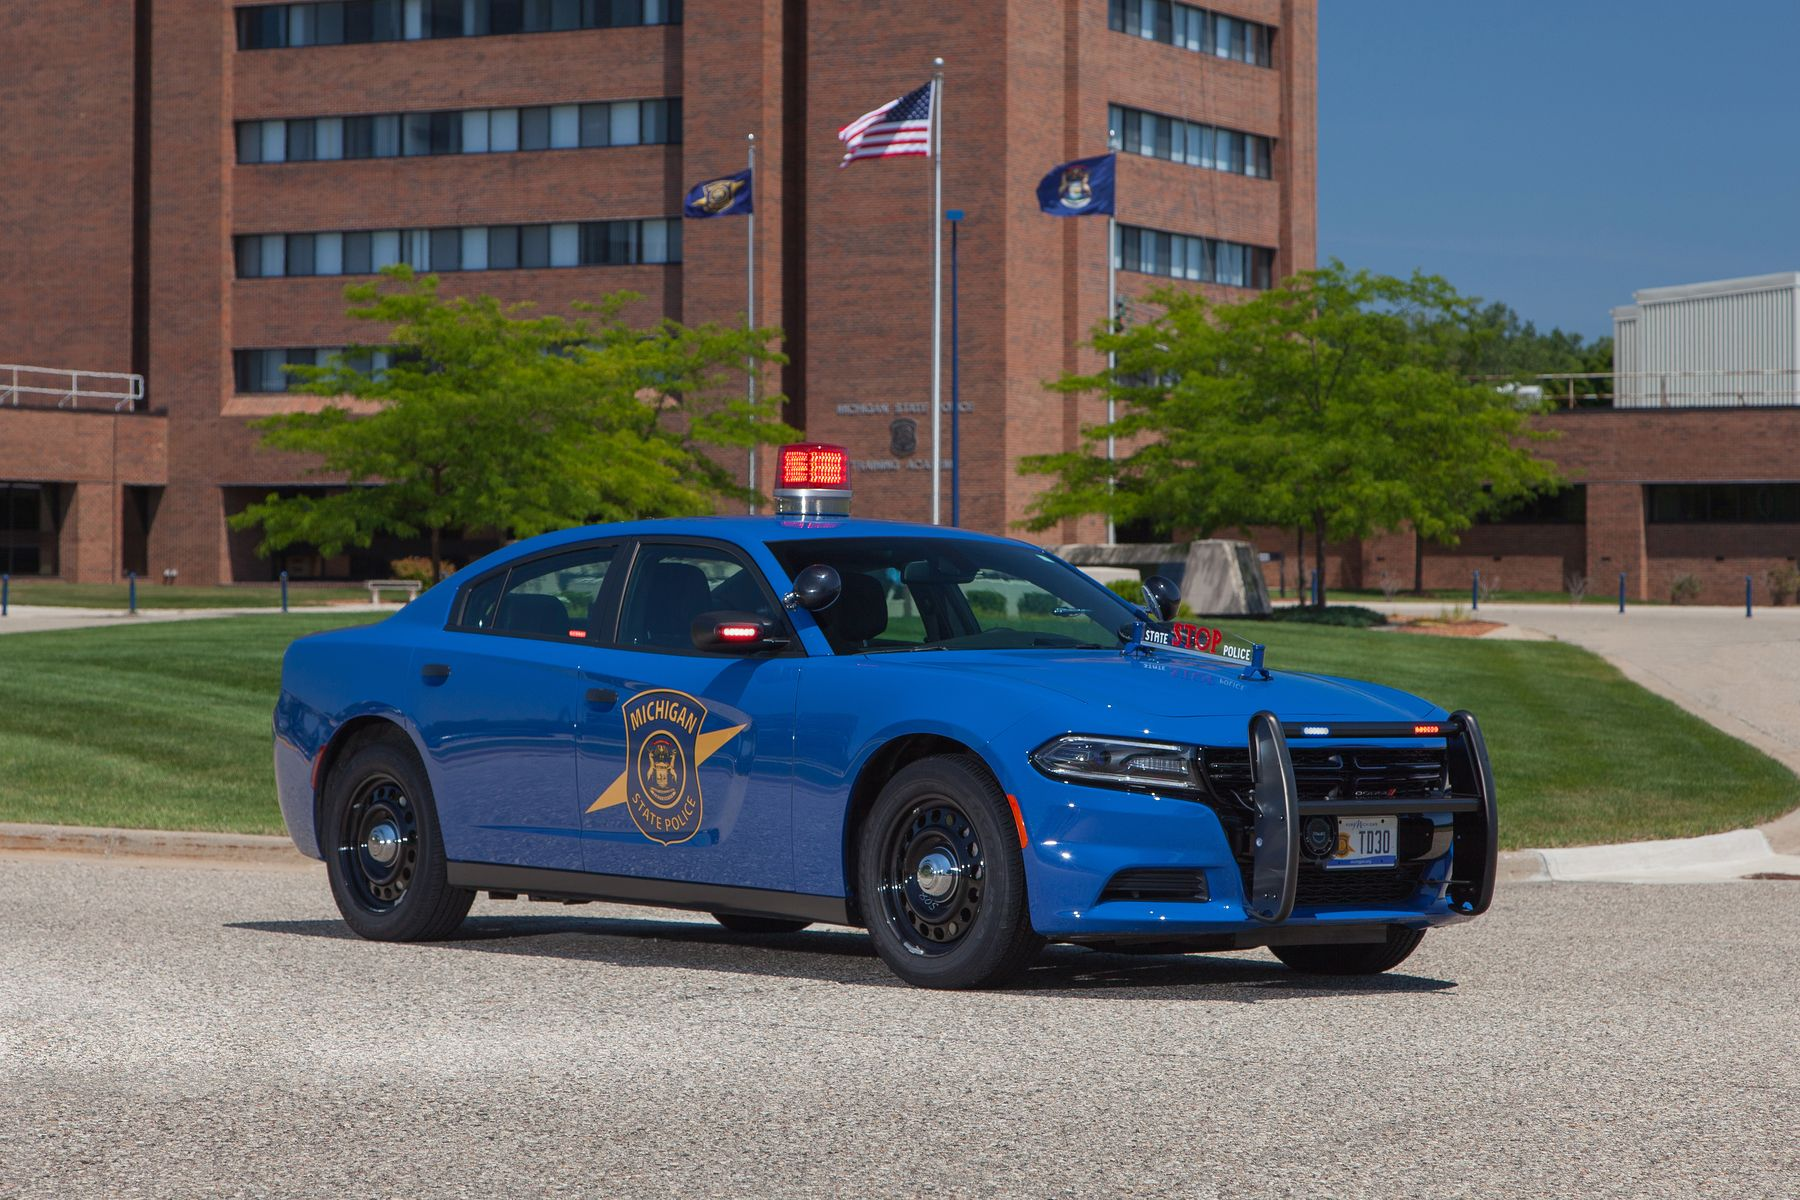 Safe Driving with the Michigan State Police and Nokian Tyres